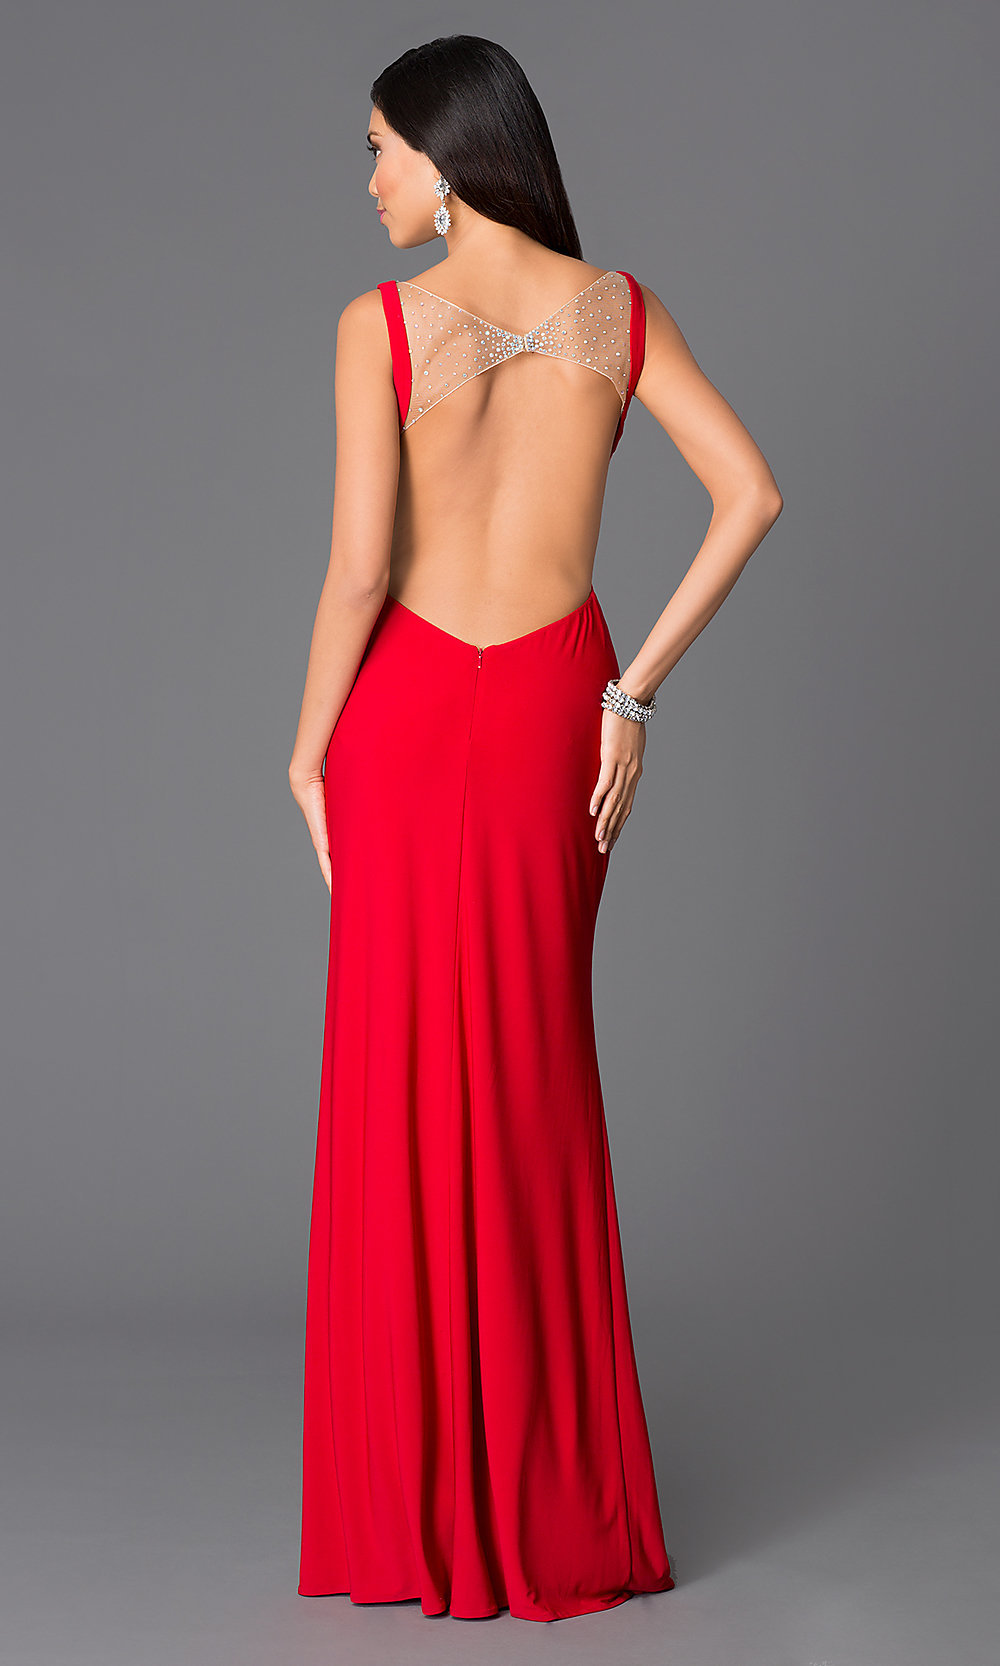 Red Low-Cut Open-Back V-Neck Prom Dress - PromGirl